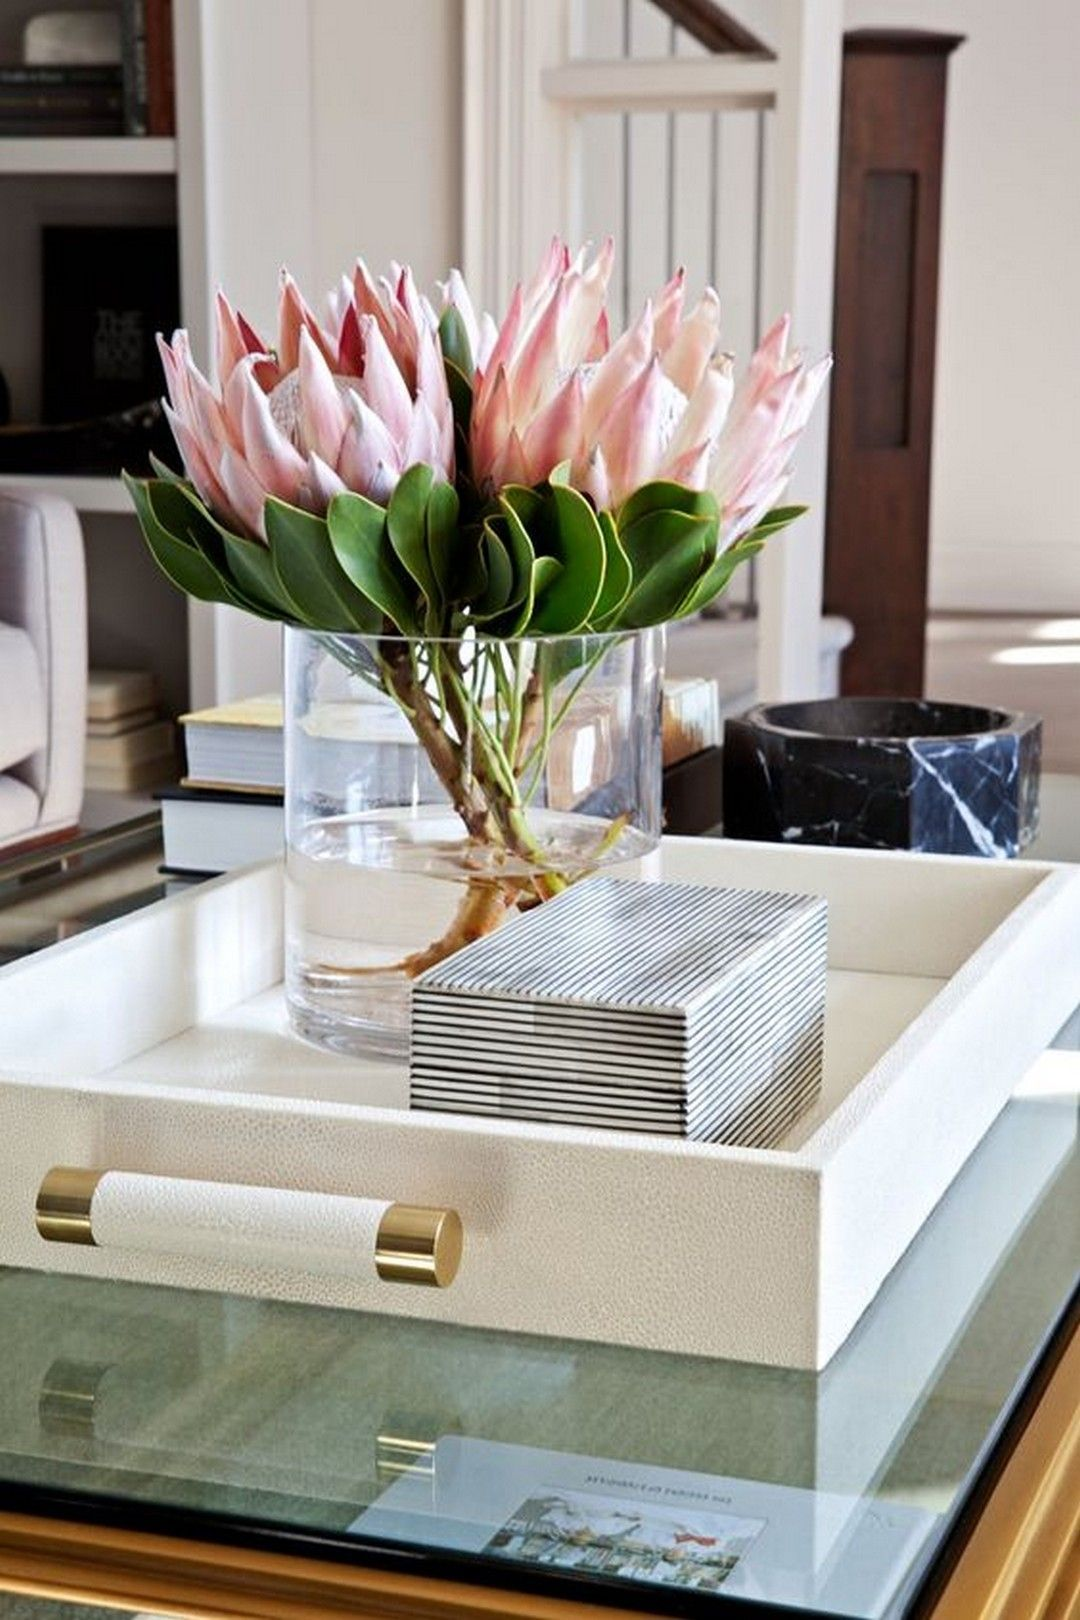 Stylish And Modern Home Accessories To Decorate Your House Decoration Homedecor Homedesign Homeideas Decor Decorating Your Home Decorating Coffee Tables